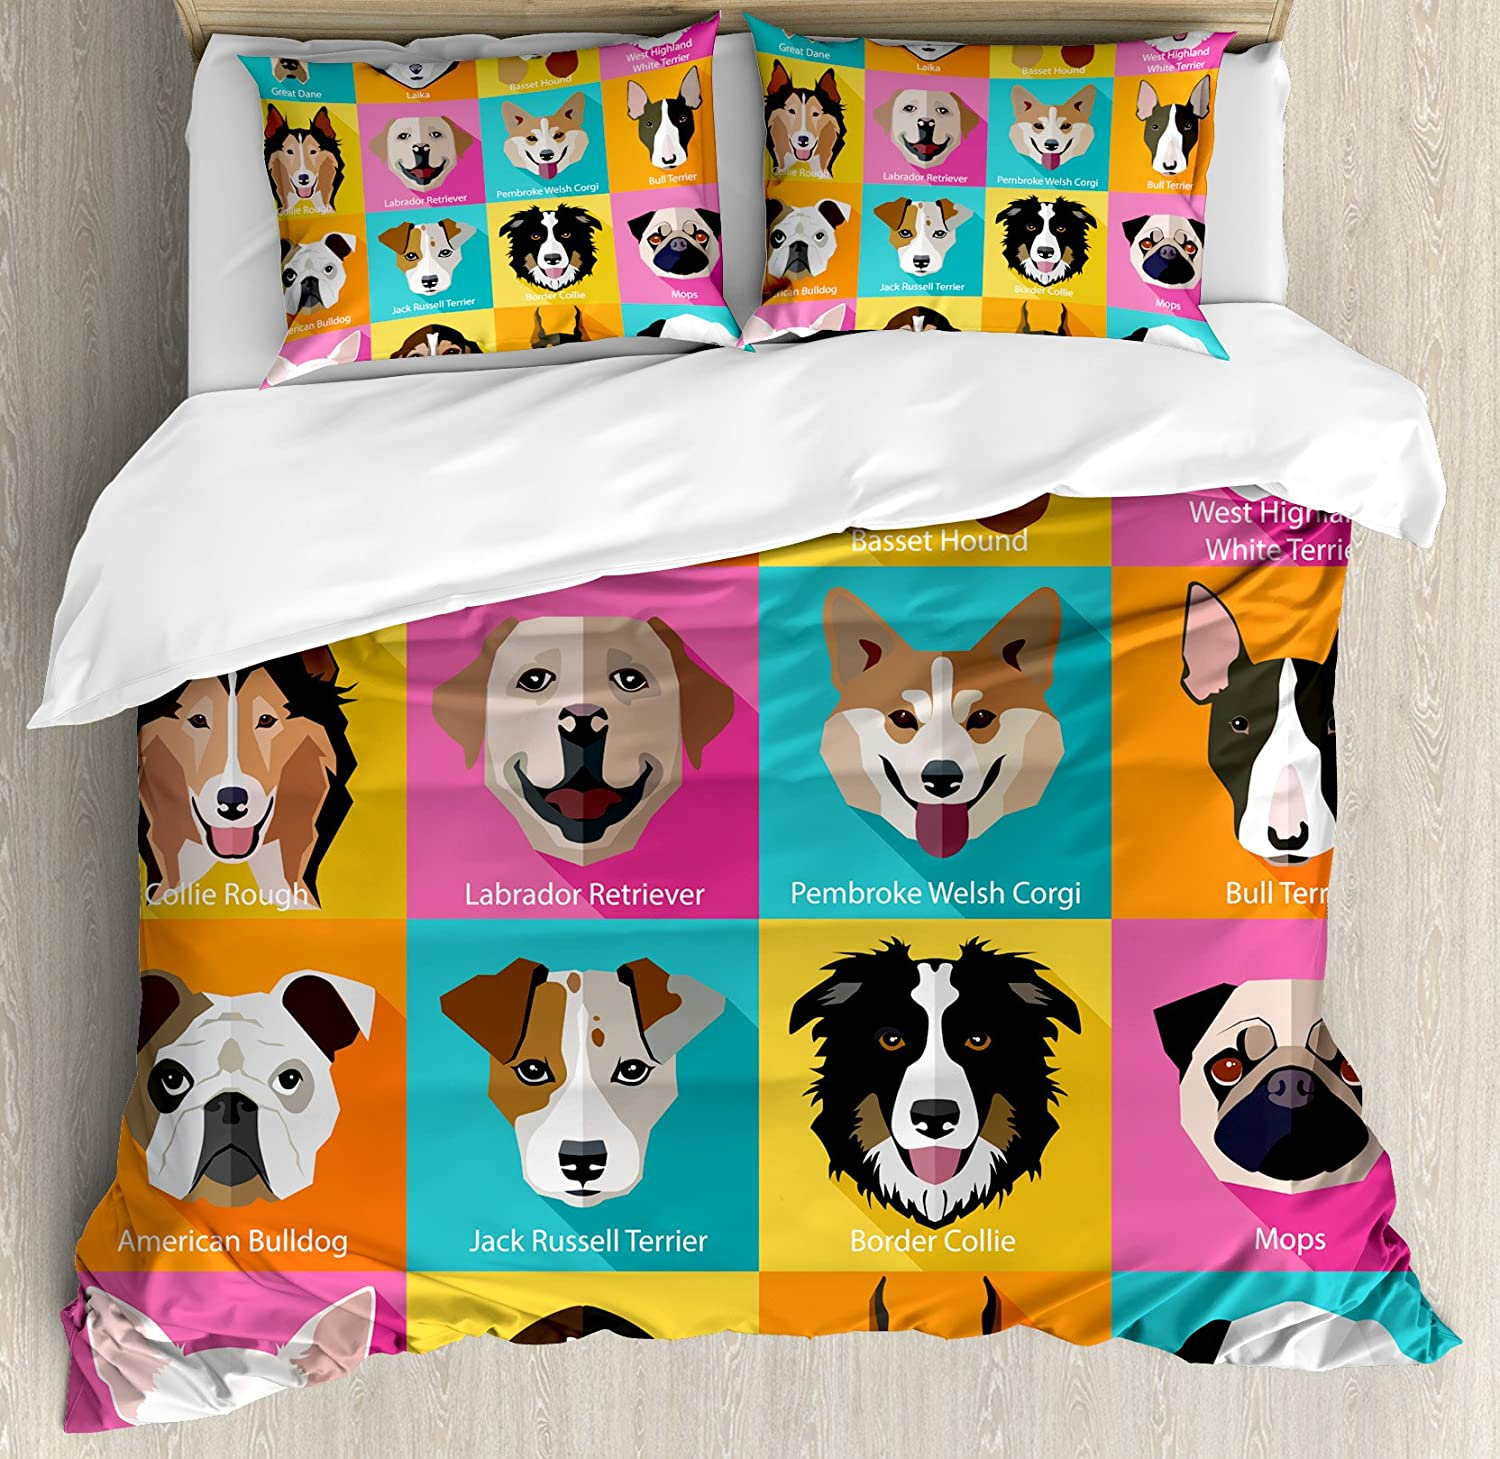 Ambesonne Kids Duvet Cover Set Queen Size, Pattern with Dogs Retro Popart Style Bulldog Hound Cartoon Print Art for Dog Lovers, Decorative 3 Piece Bedding Set with 2 Pillow Shams, Pink Blue Yellow